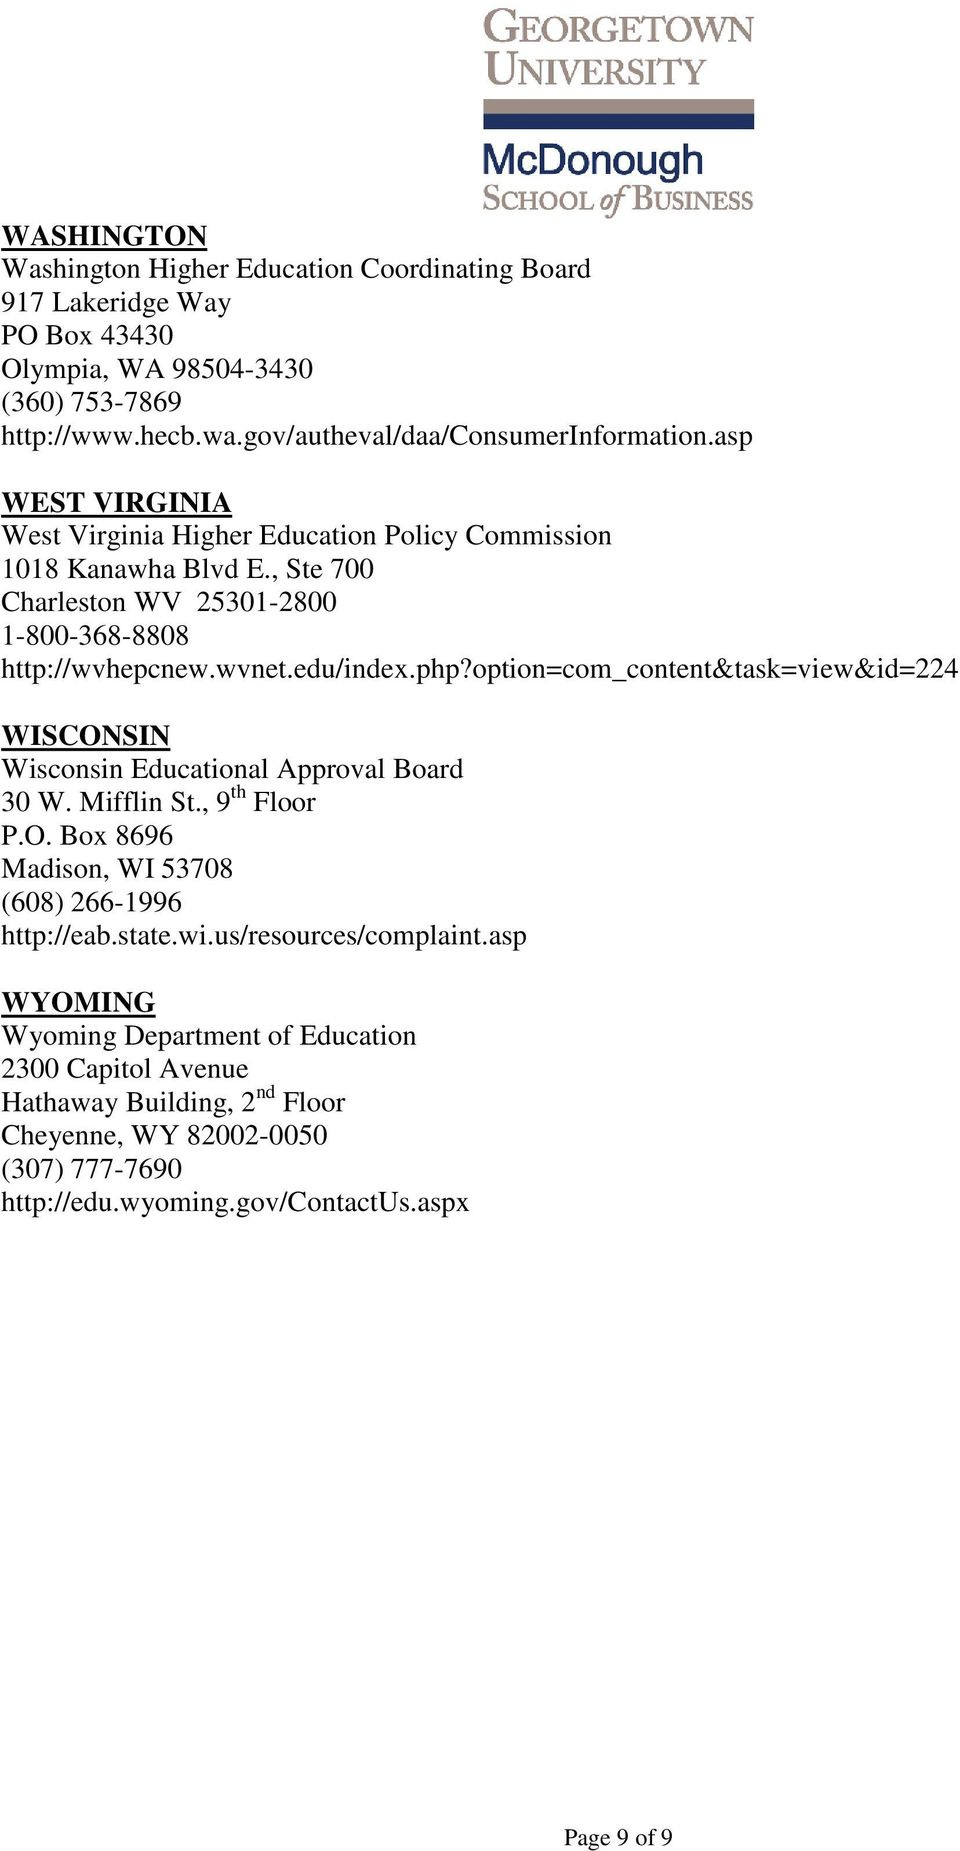 option=com_content&task=view&id=224 WISCONSIN Wisconsin Educational Approval Board 30 W. Mifflin St., 9 th Floor P.O. Box 8696 Madison, WI 53708 (608) 266-1996 http://eab.state.wi.